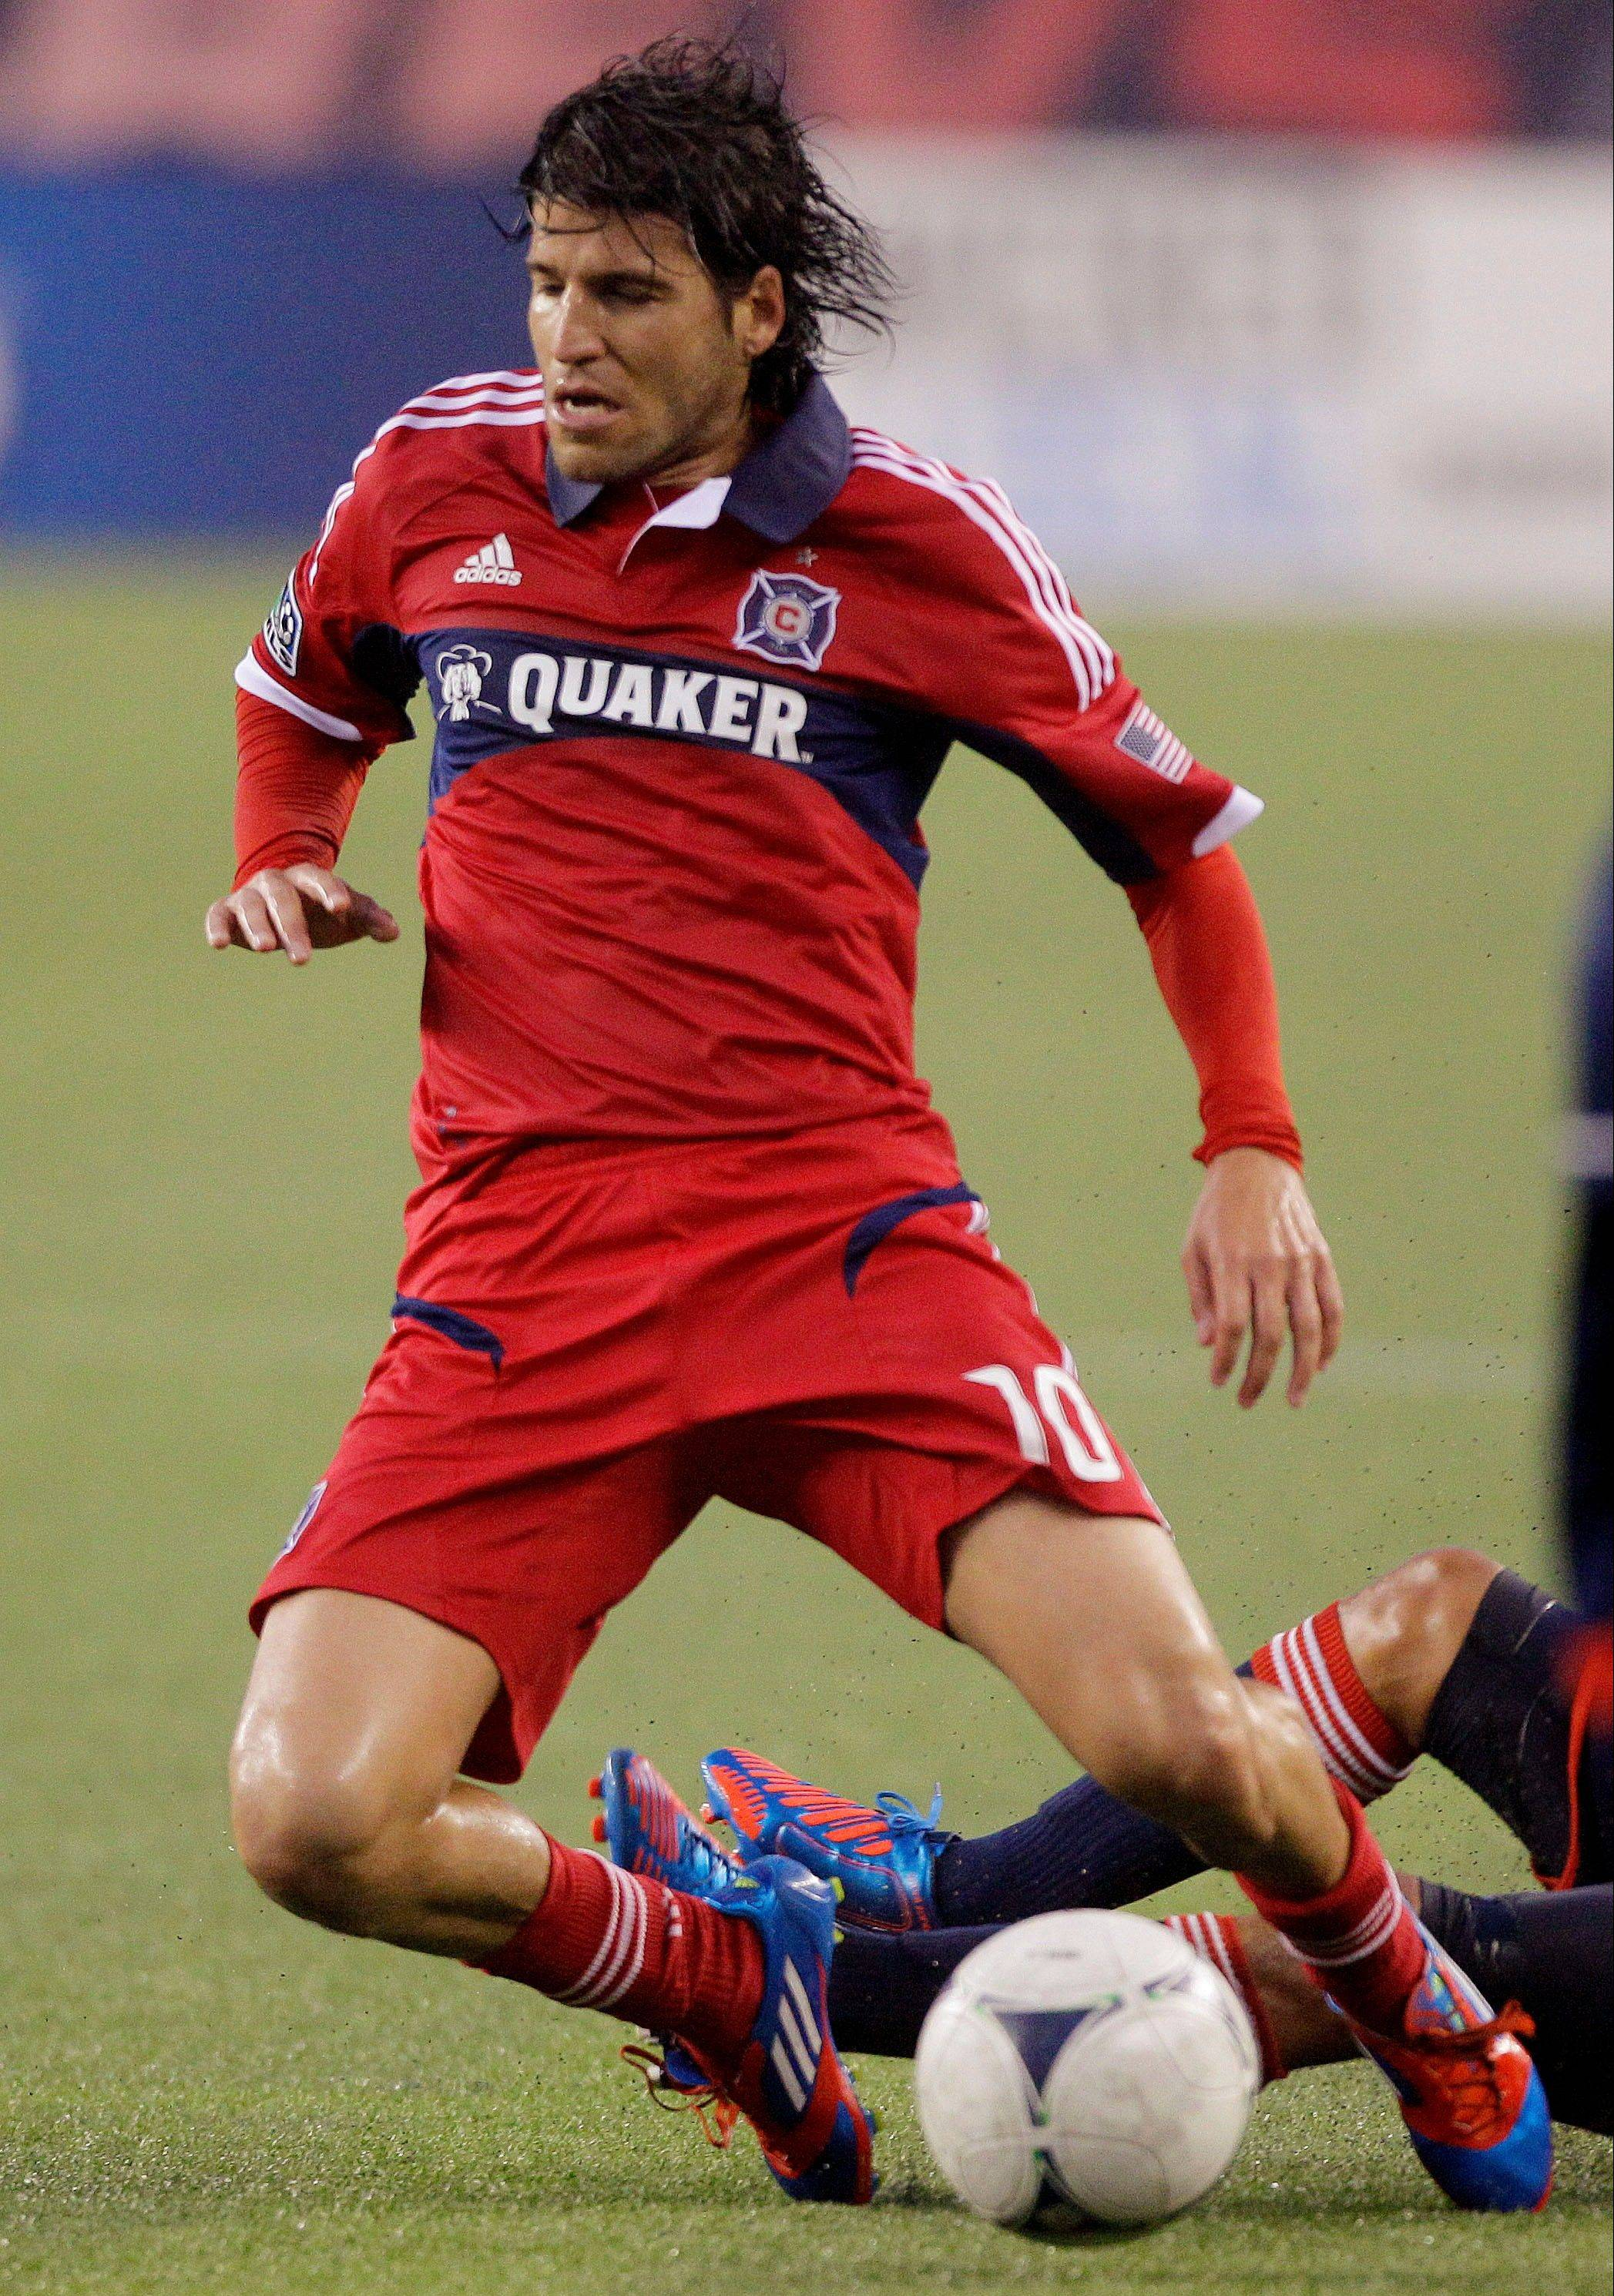 The Chicago Fire must decide if it will keep midfielder Sebastian Grazzini , whose contract expires at midseason.